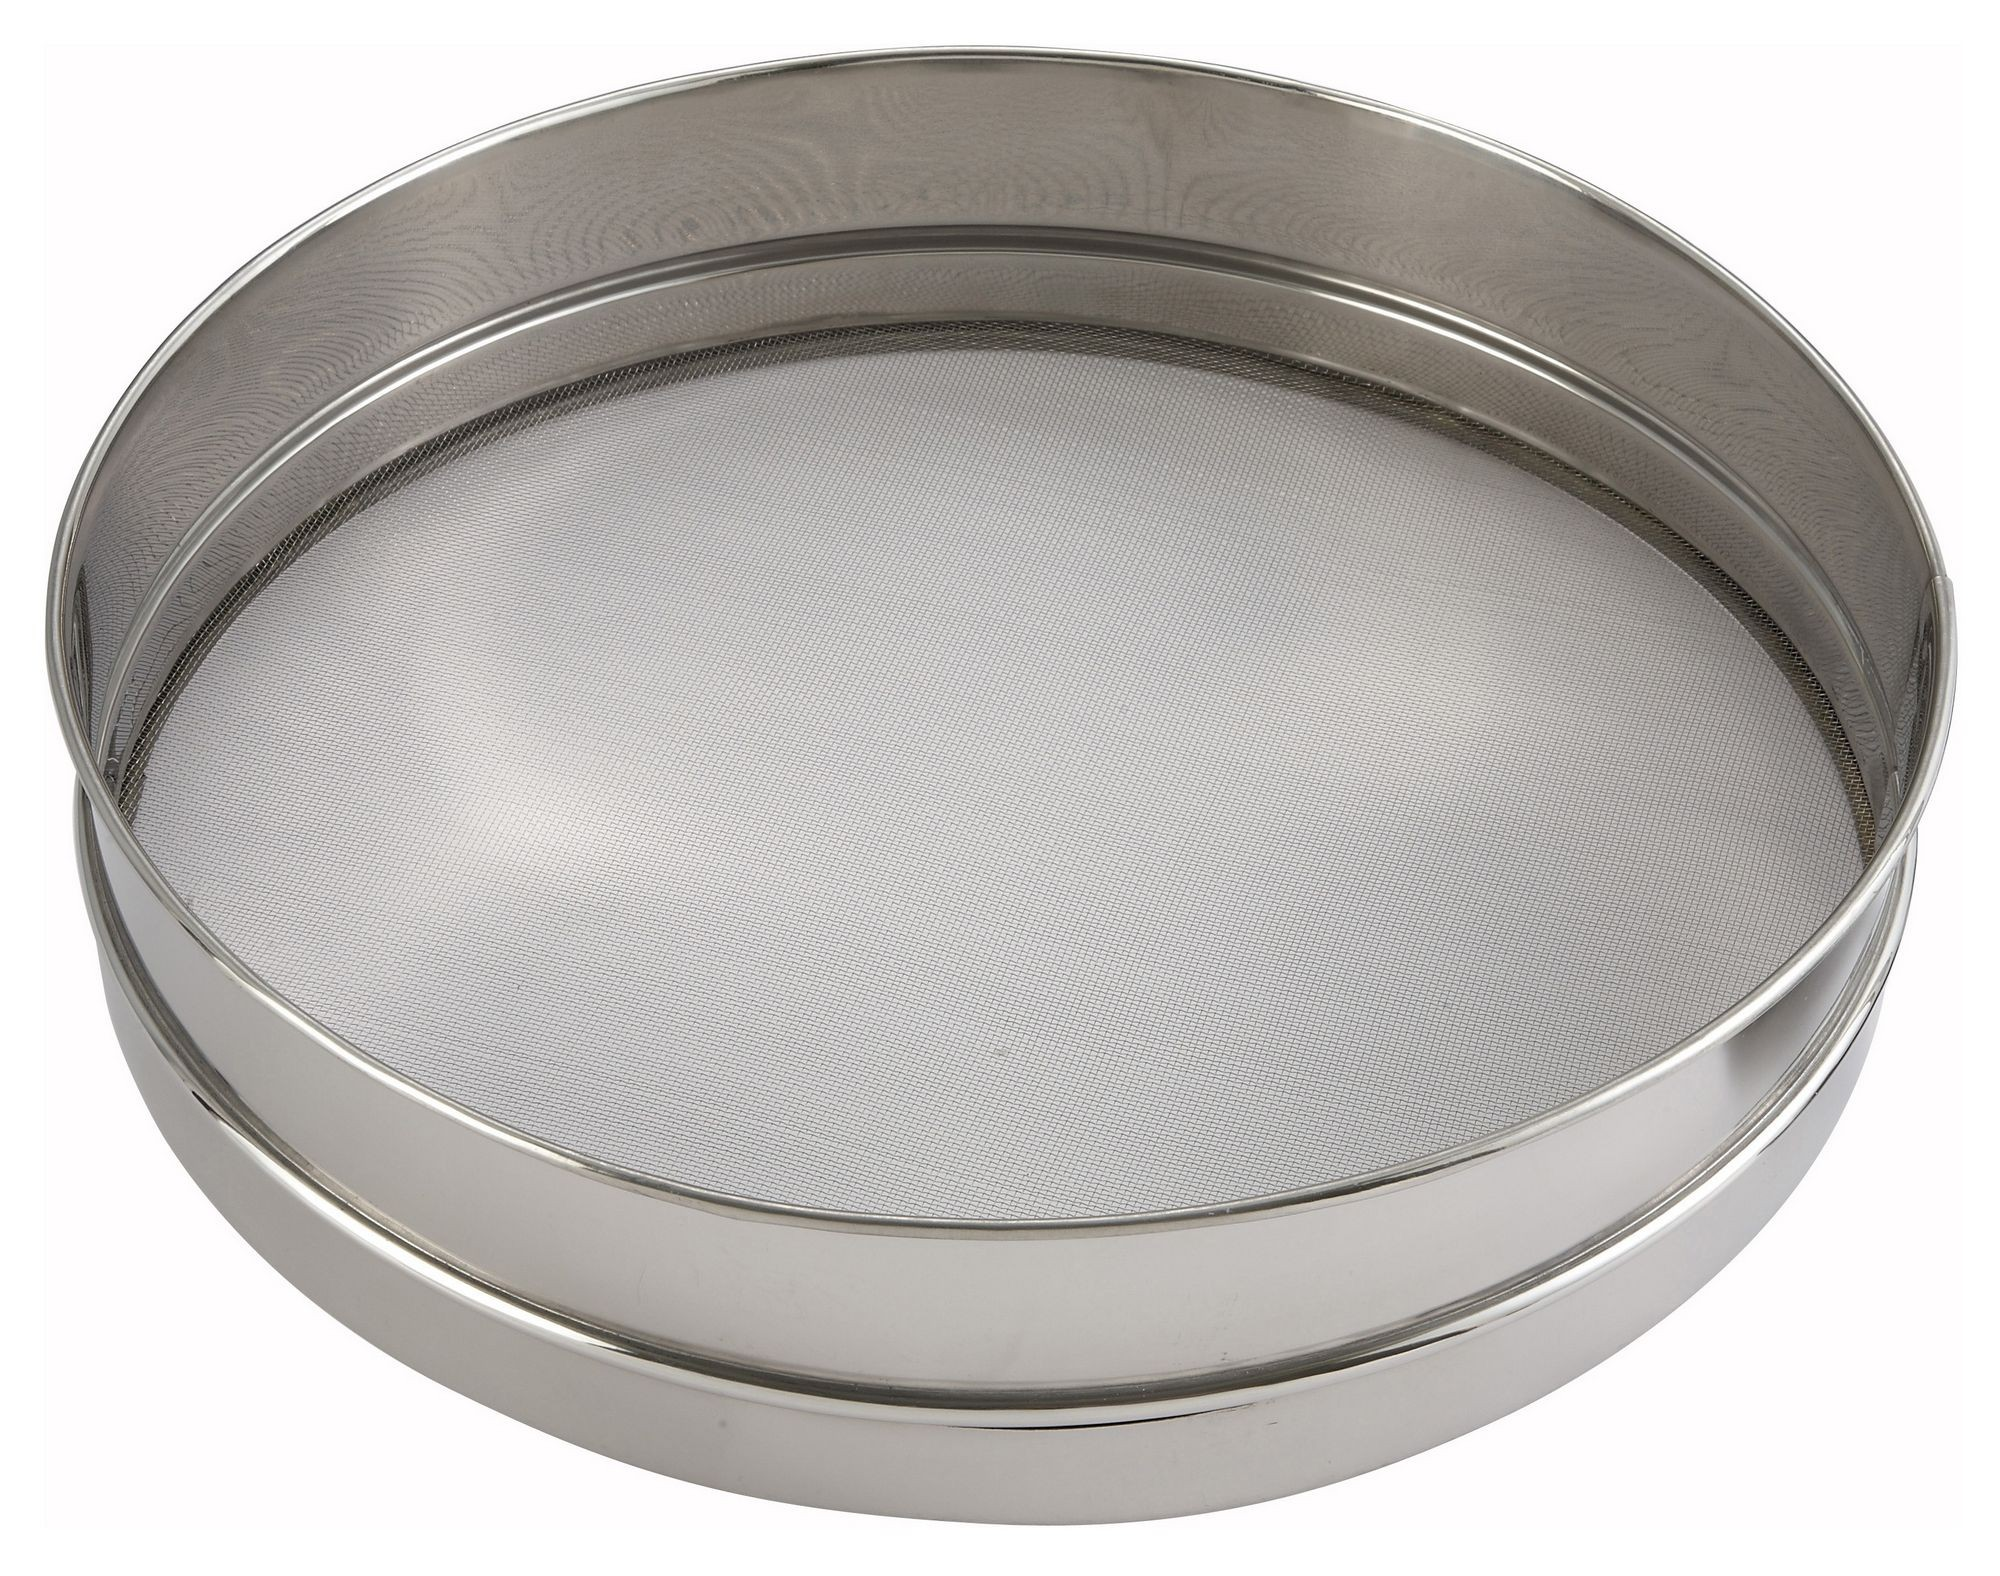 Stainless Steel Sieve With Rim/Mesh - 14 Dia. x 3 Deep